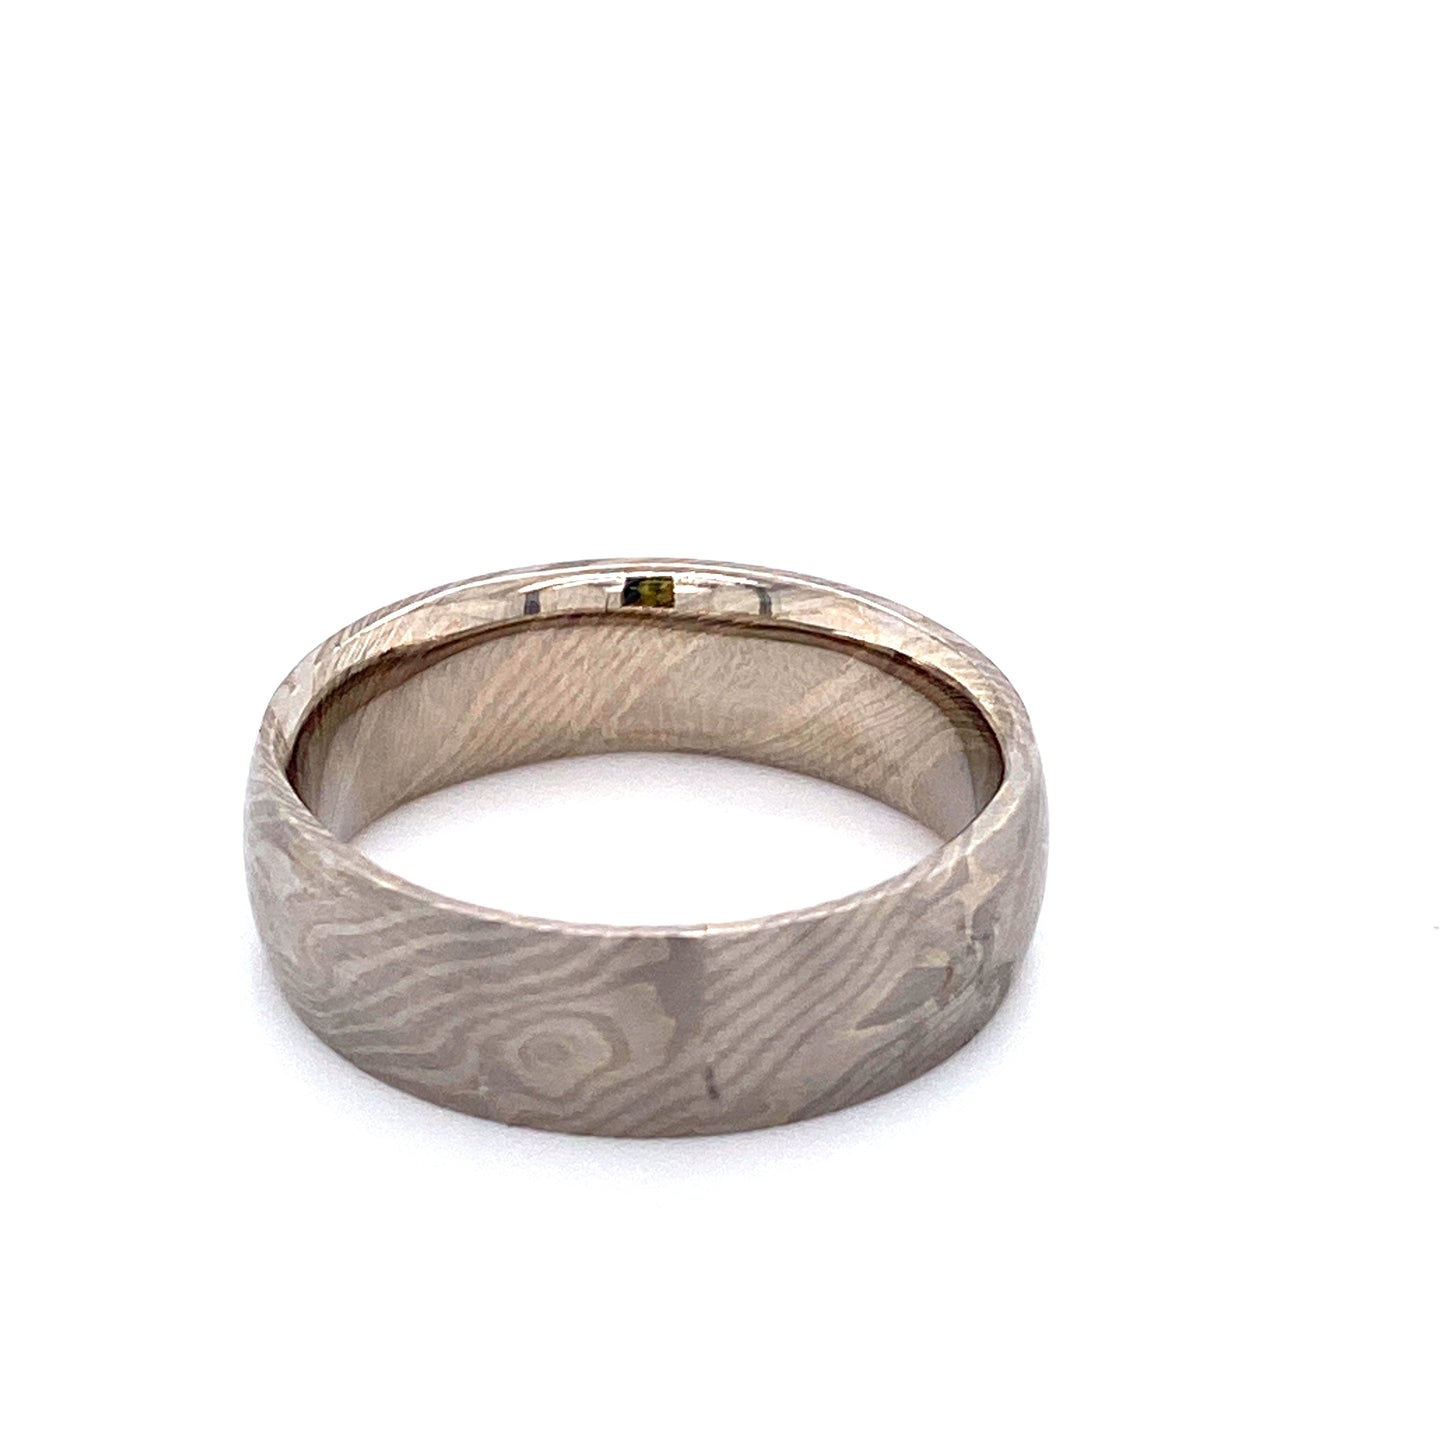 Chris Ploof Mokume Gane Birich Pattern Band